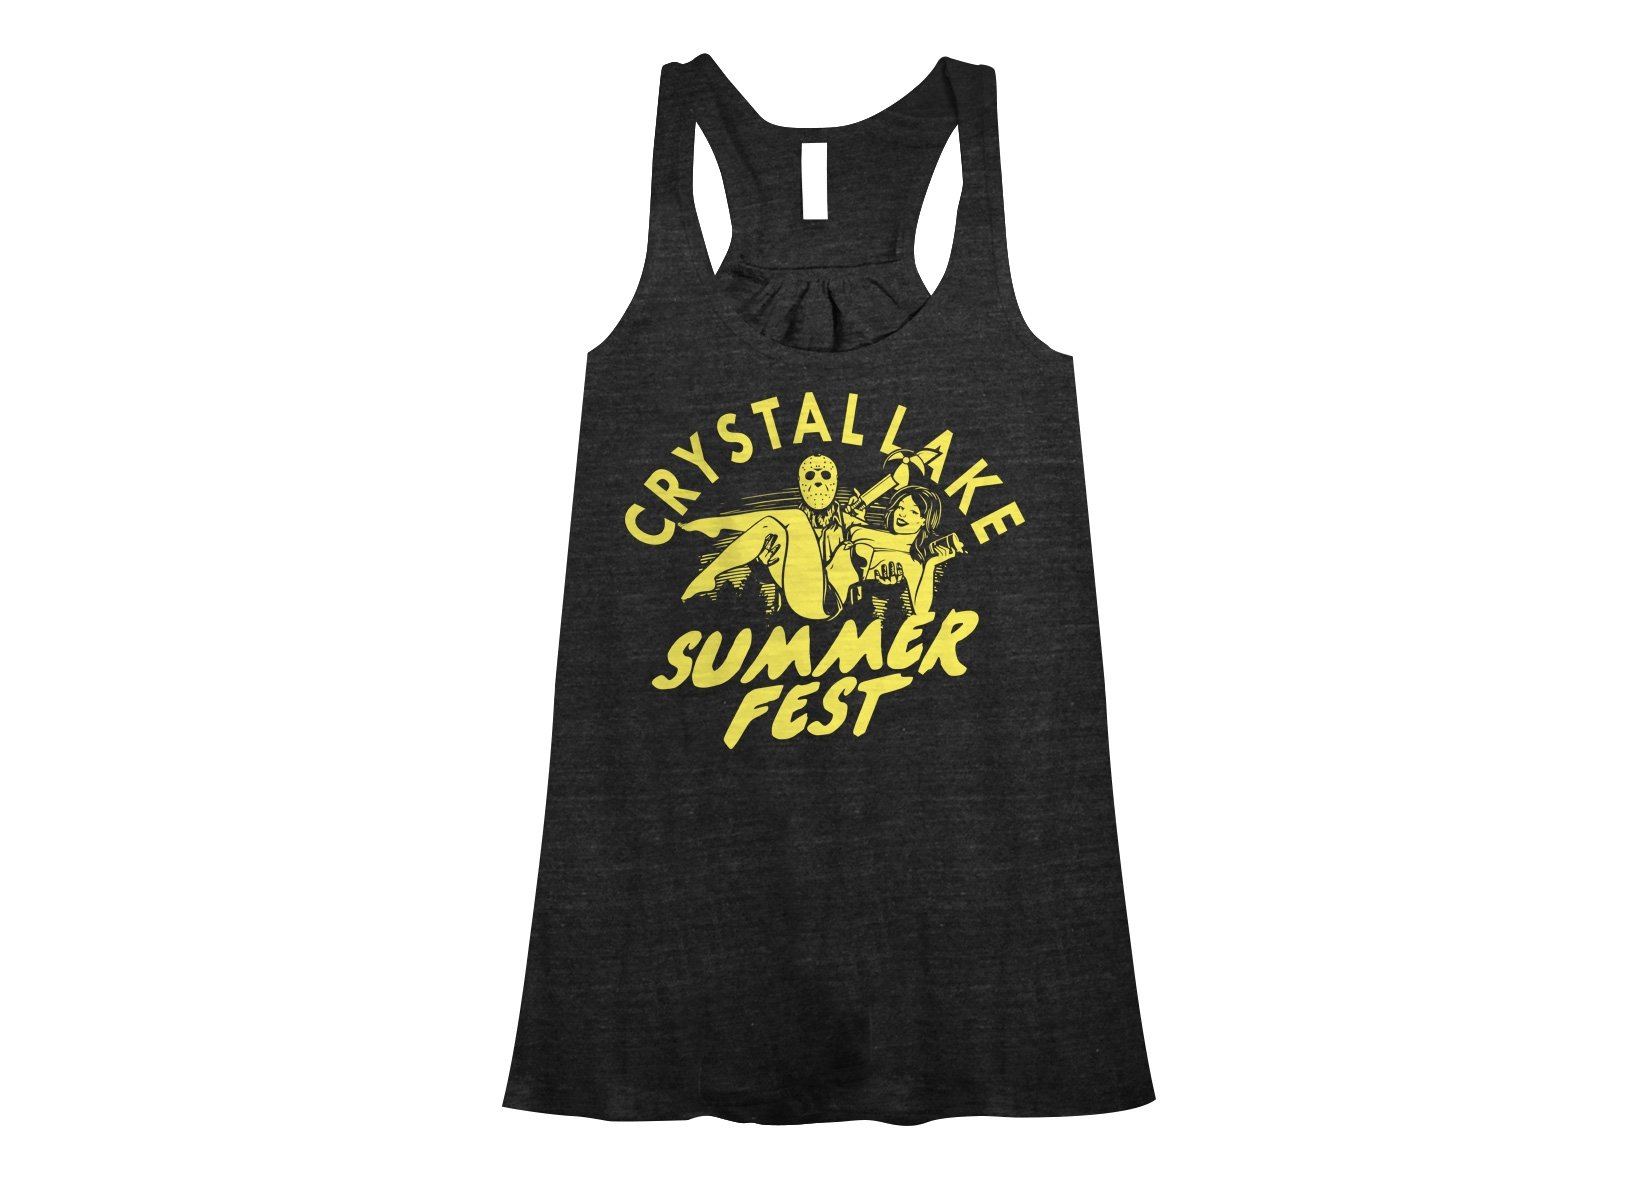 Crystal Lake Summer Fest on Womens Tanks T-Shirt